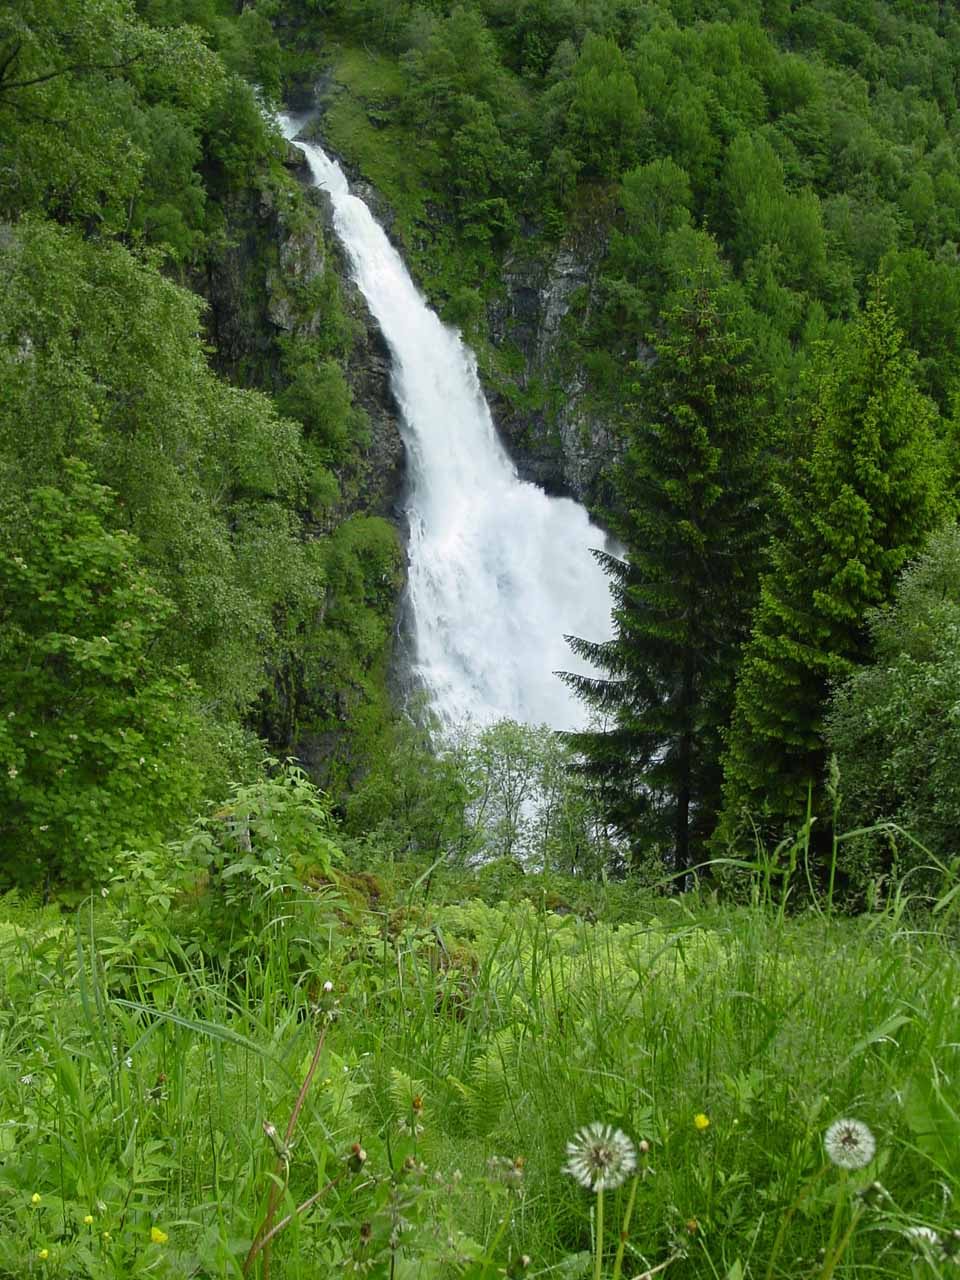 Somewhere near the half-way point down Stalheimskleiva was probably our cleanest view of Sivlefossen